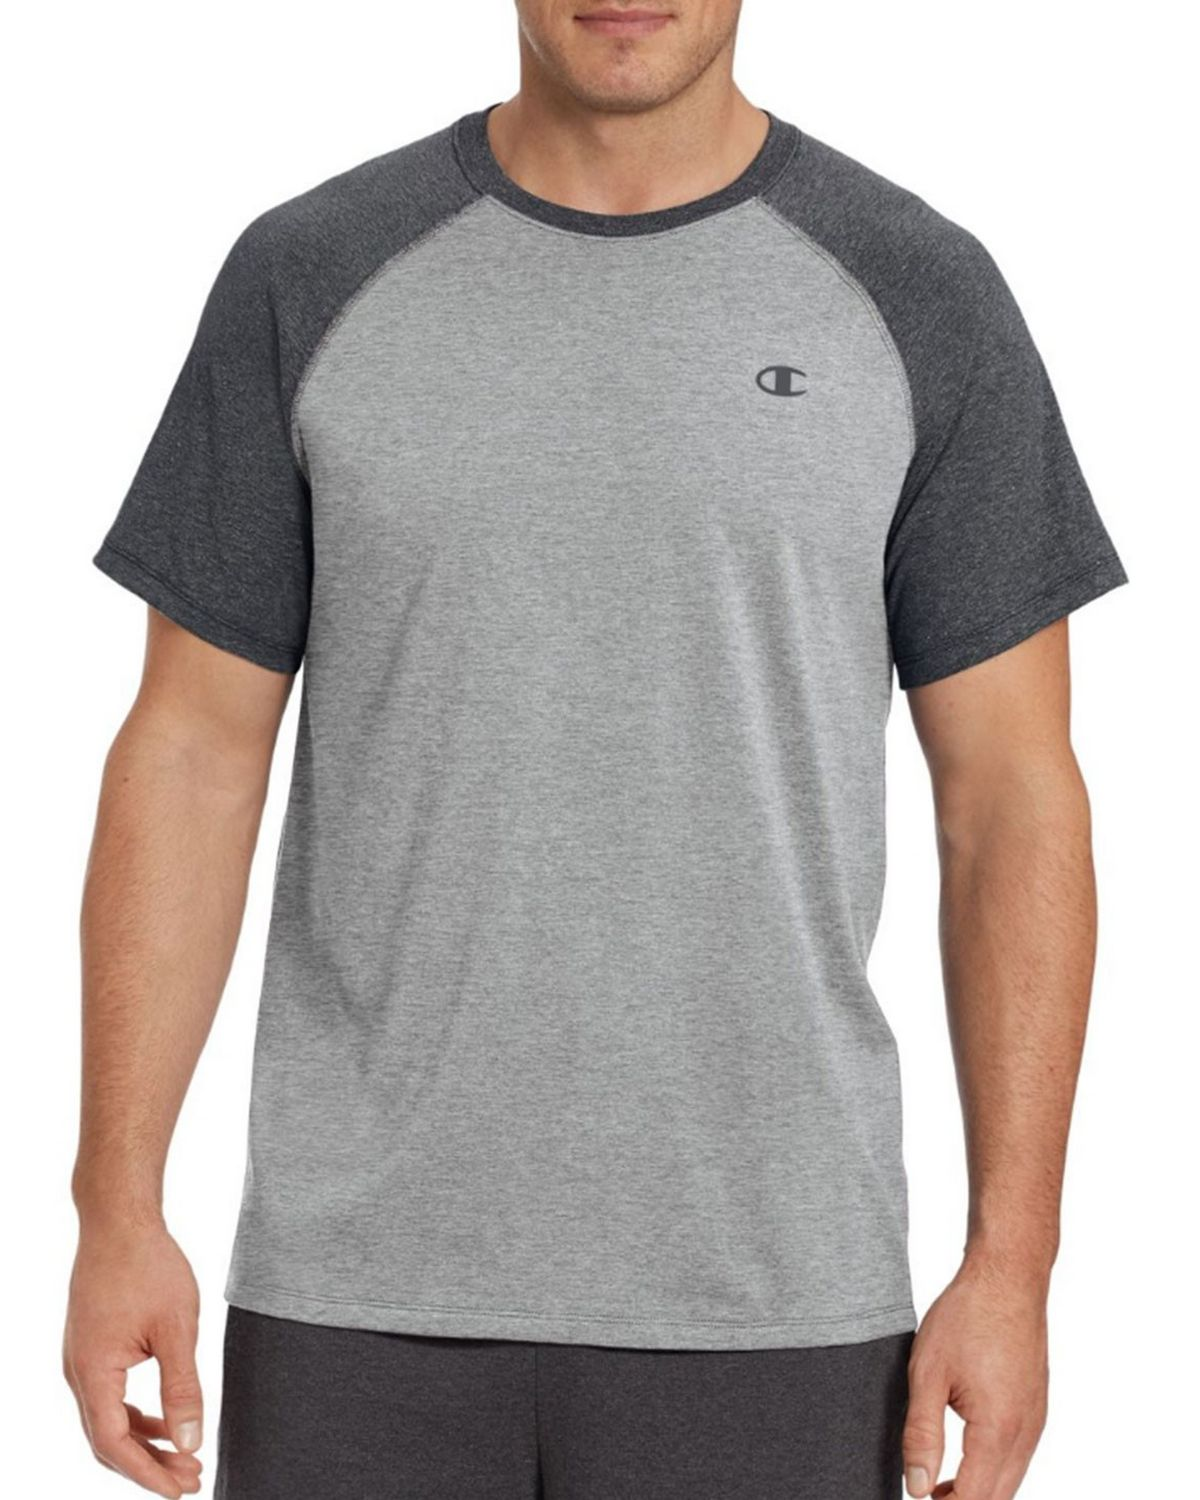 Champion T8822 Vapor Mens Tee - Champ Oxford Grey - S T8822